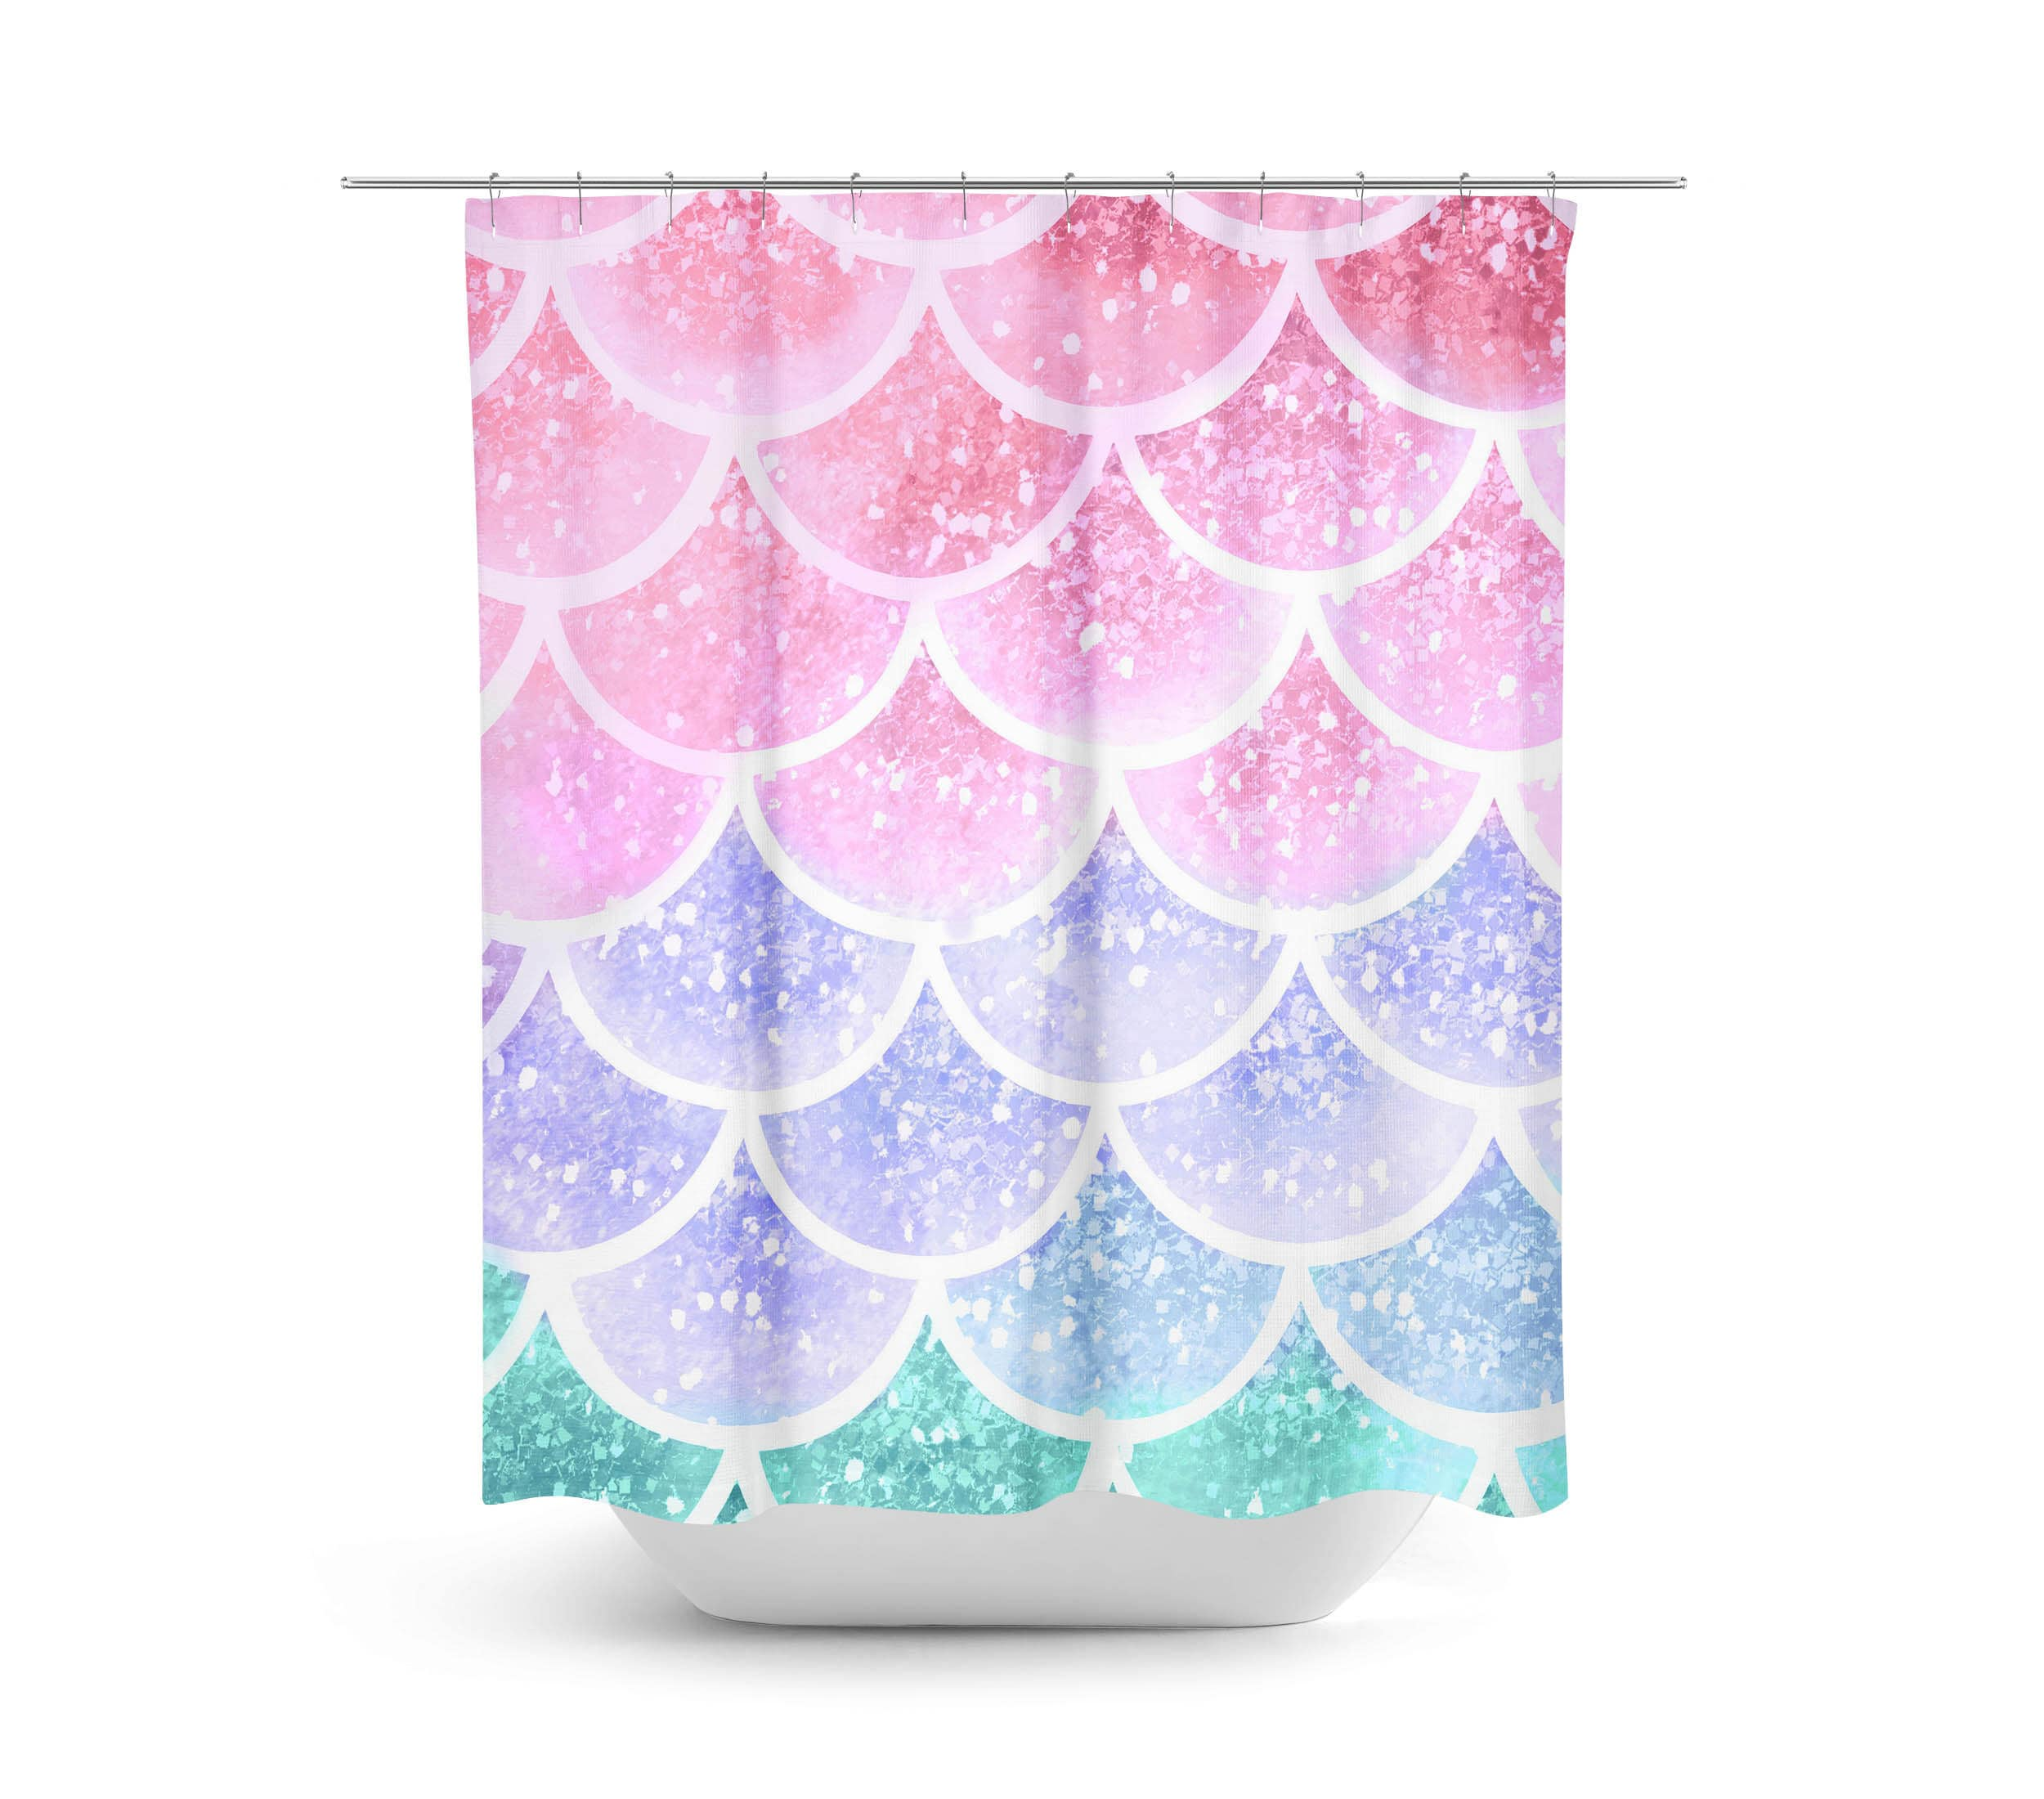 Mermaid Scale Shower Curtain Pastel Mermaid Scales Shower Curtain Bath Towel Bath Mat Window